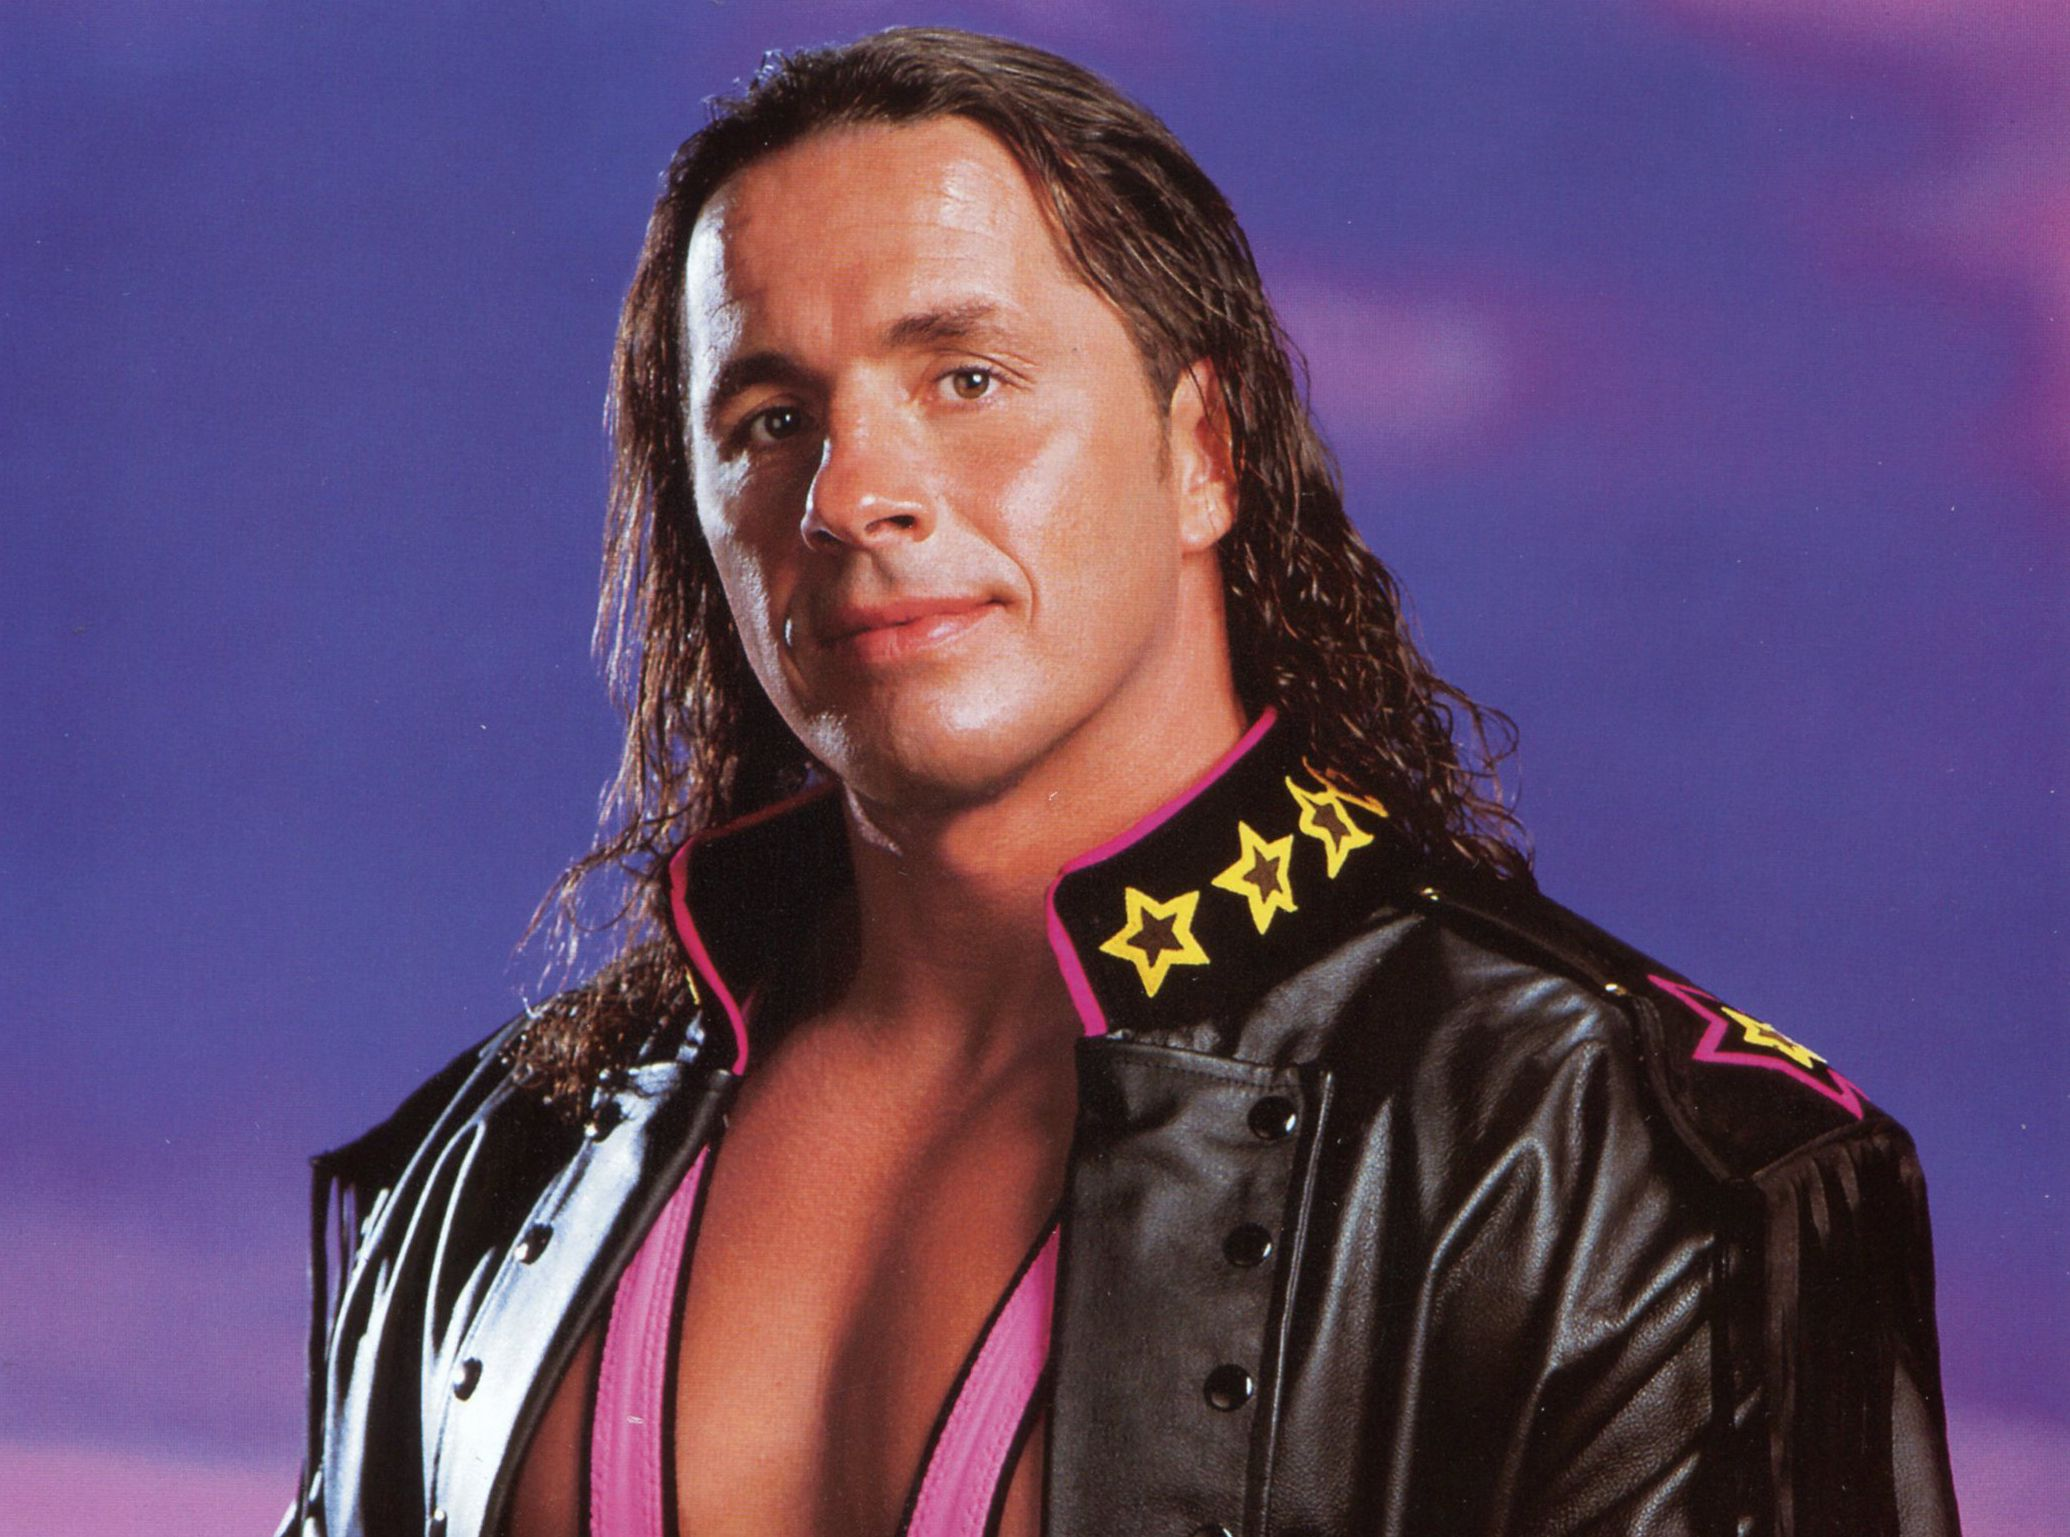 Bret The Hitman Hart Attacked By Spectator At Wwe Hall Of Fame Induction Video Masslive Com